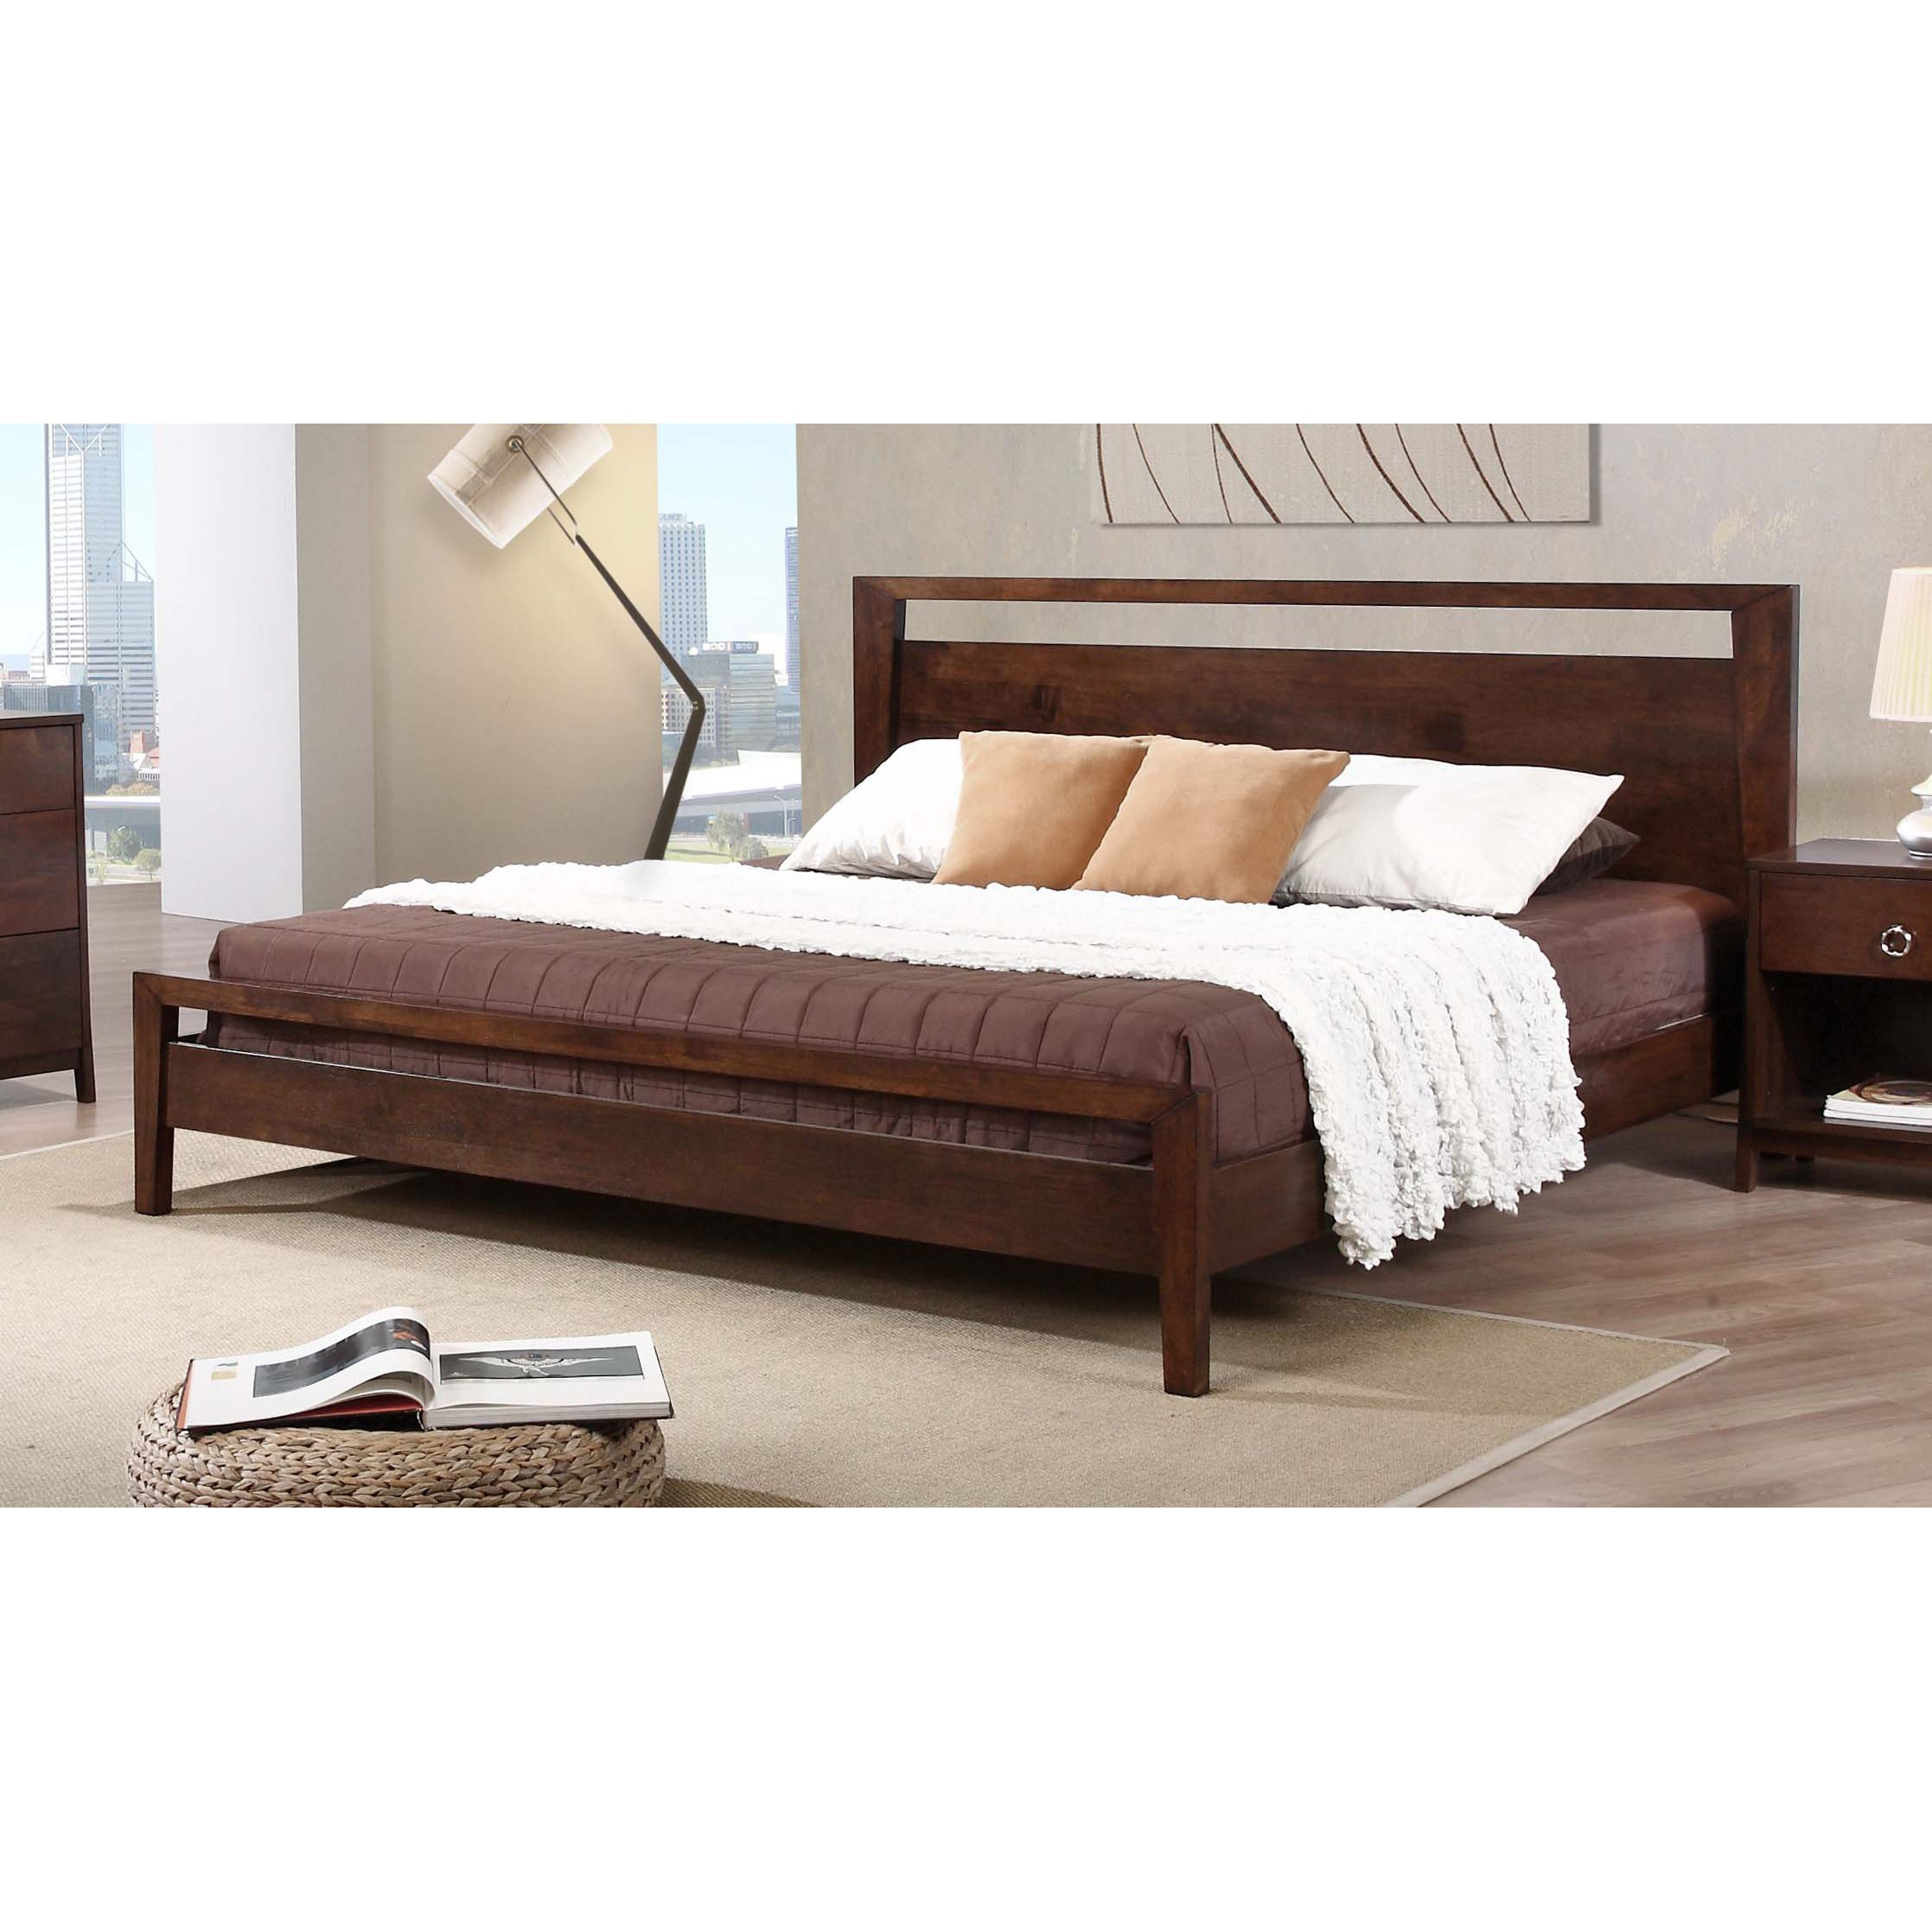 Give Your Bedroom A Modern Touch With This Stylish Kingsize Platform Bed  Made